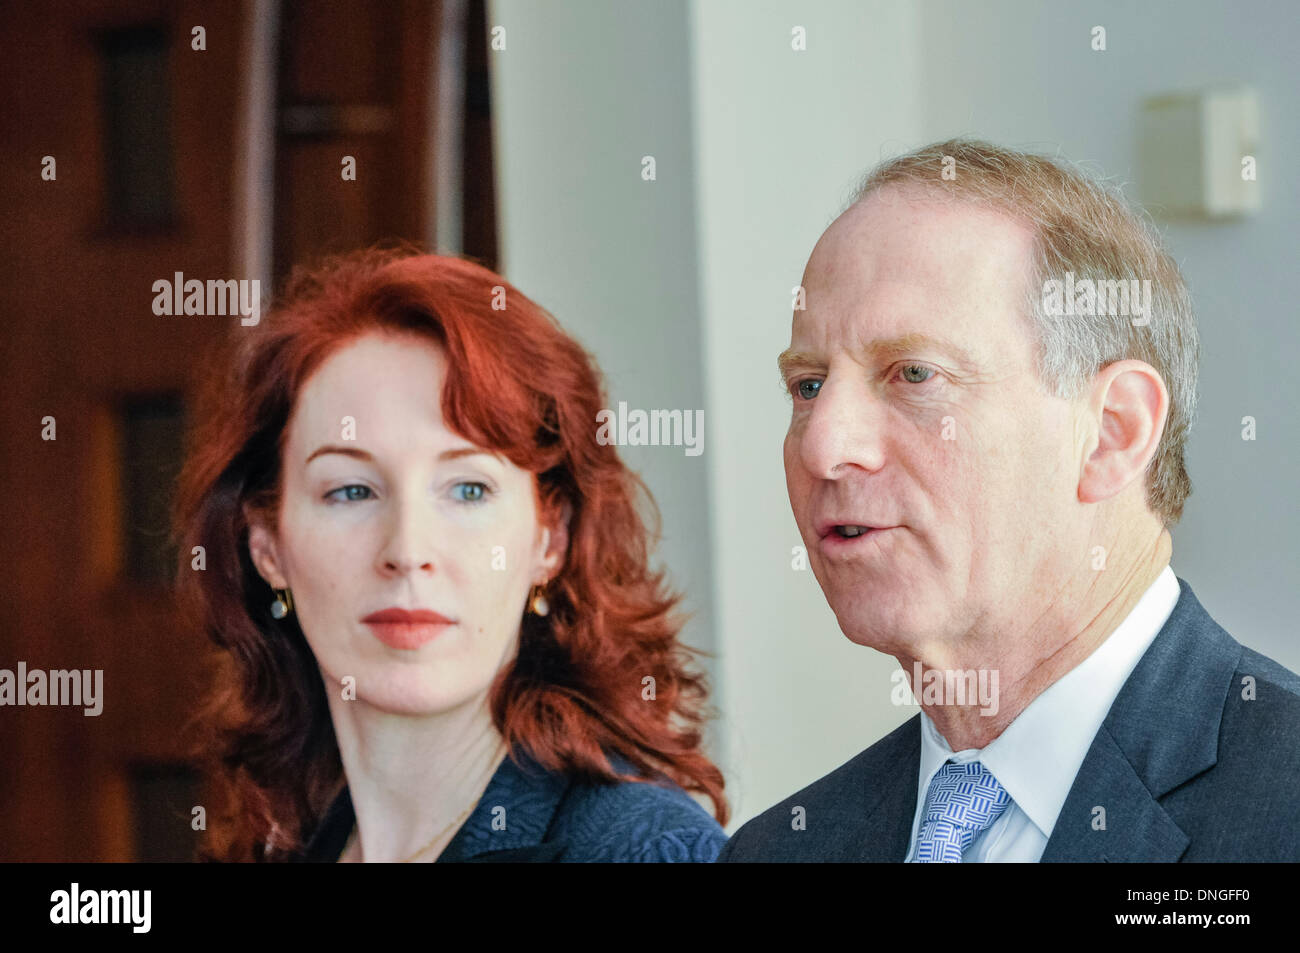 Belfast. Northern Ireland. 28th Dec 2013 - US Diplomat Richard Haass and Professor Meghan O'Sullivan return to Belfast for talks on past, flags and parades with the local political parties Credit:  Stephen Barnes/Alamy Live News - Stock Image